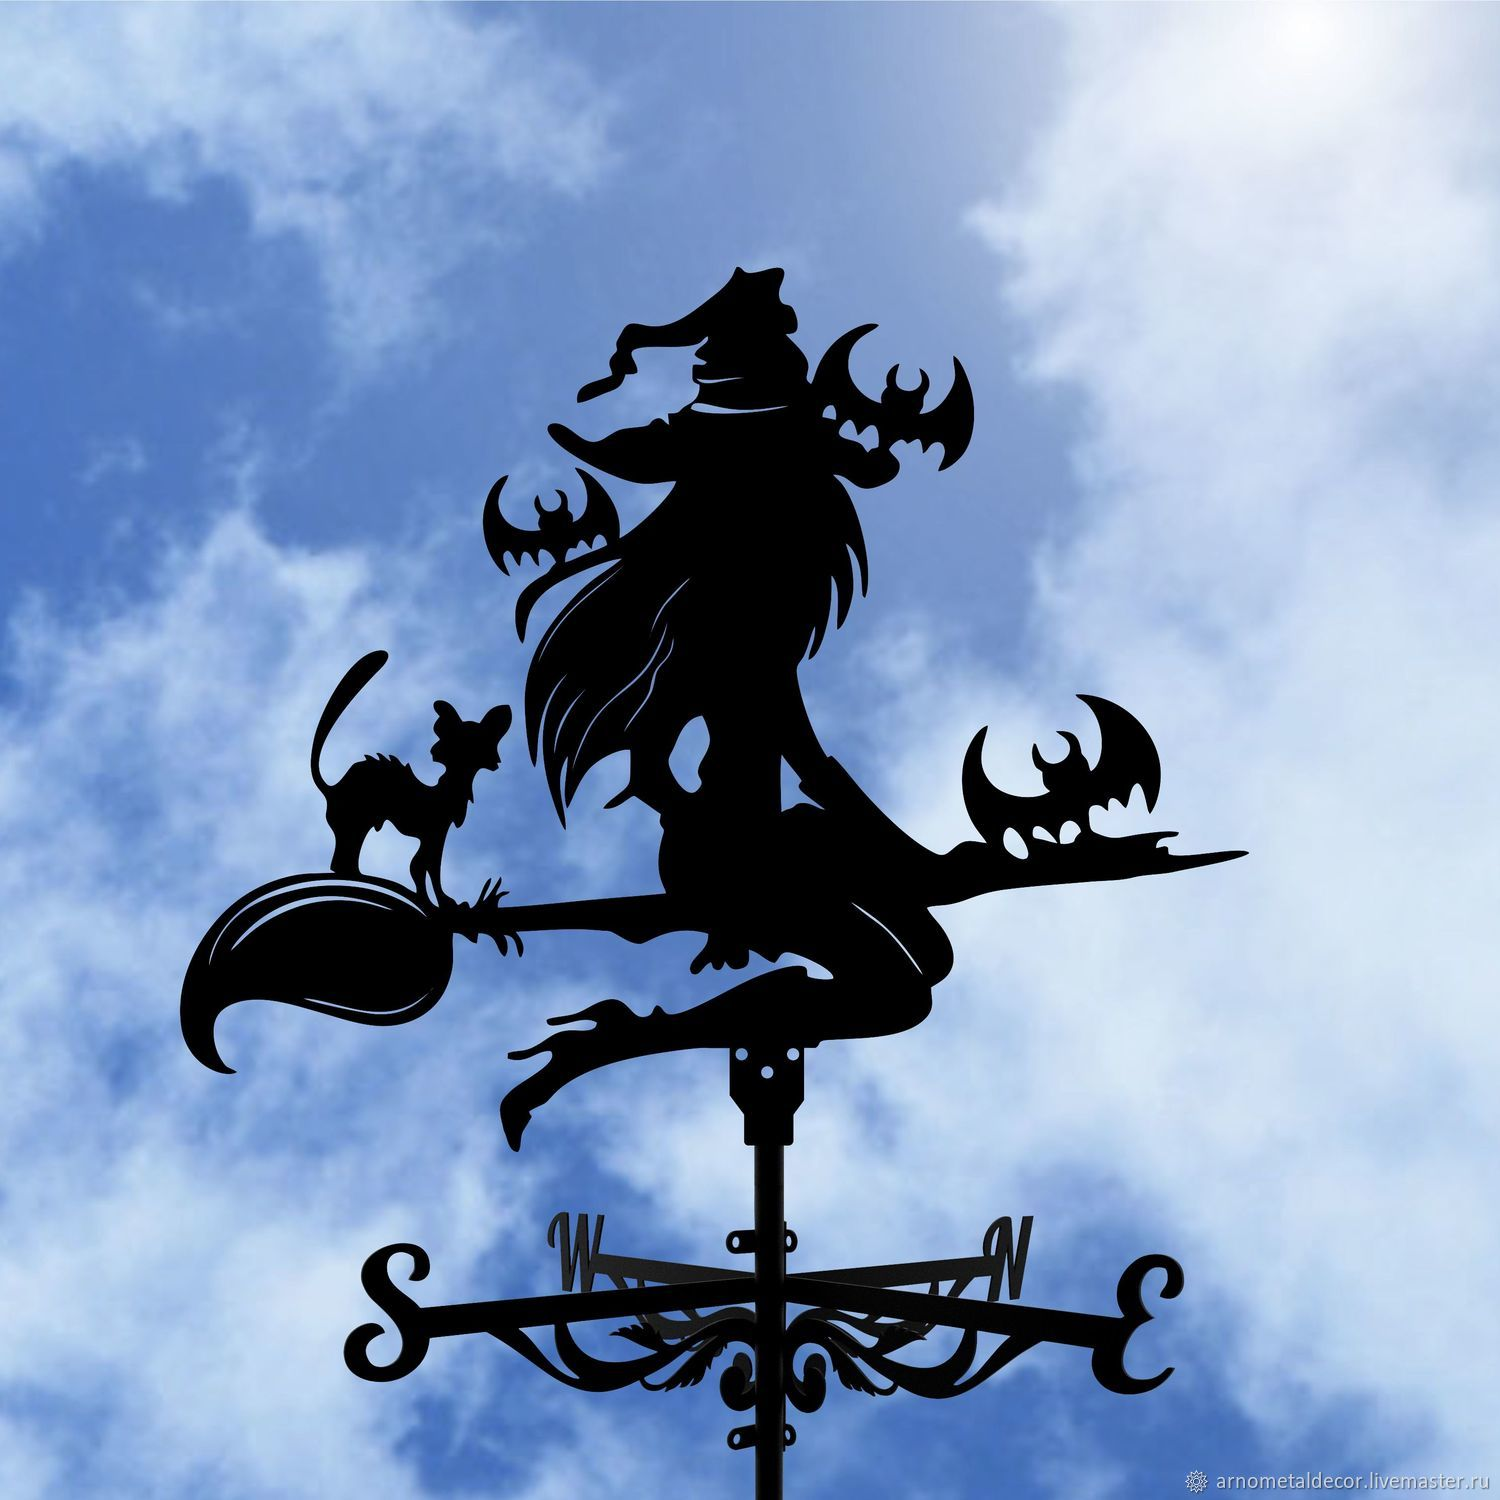 Weather vane on the roof ' The Witch and the Bats', Vane, Ivanovo,  Фото №1